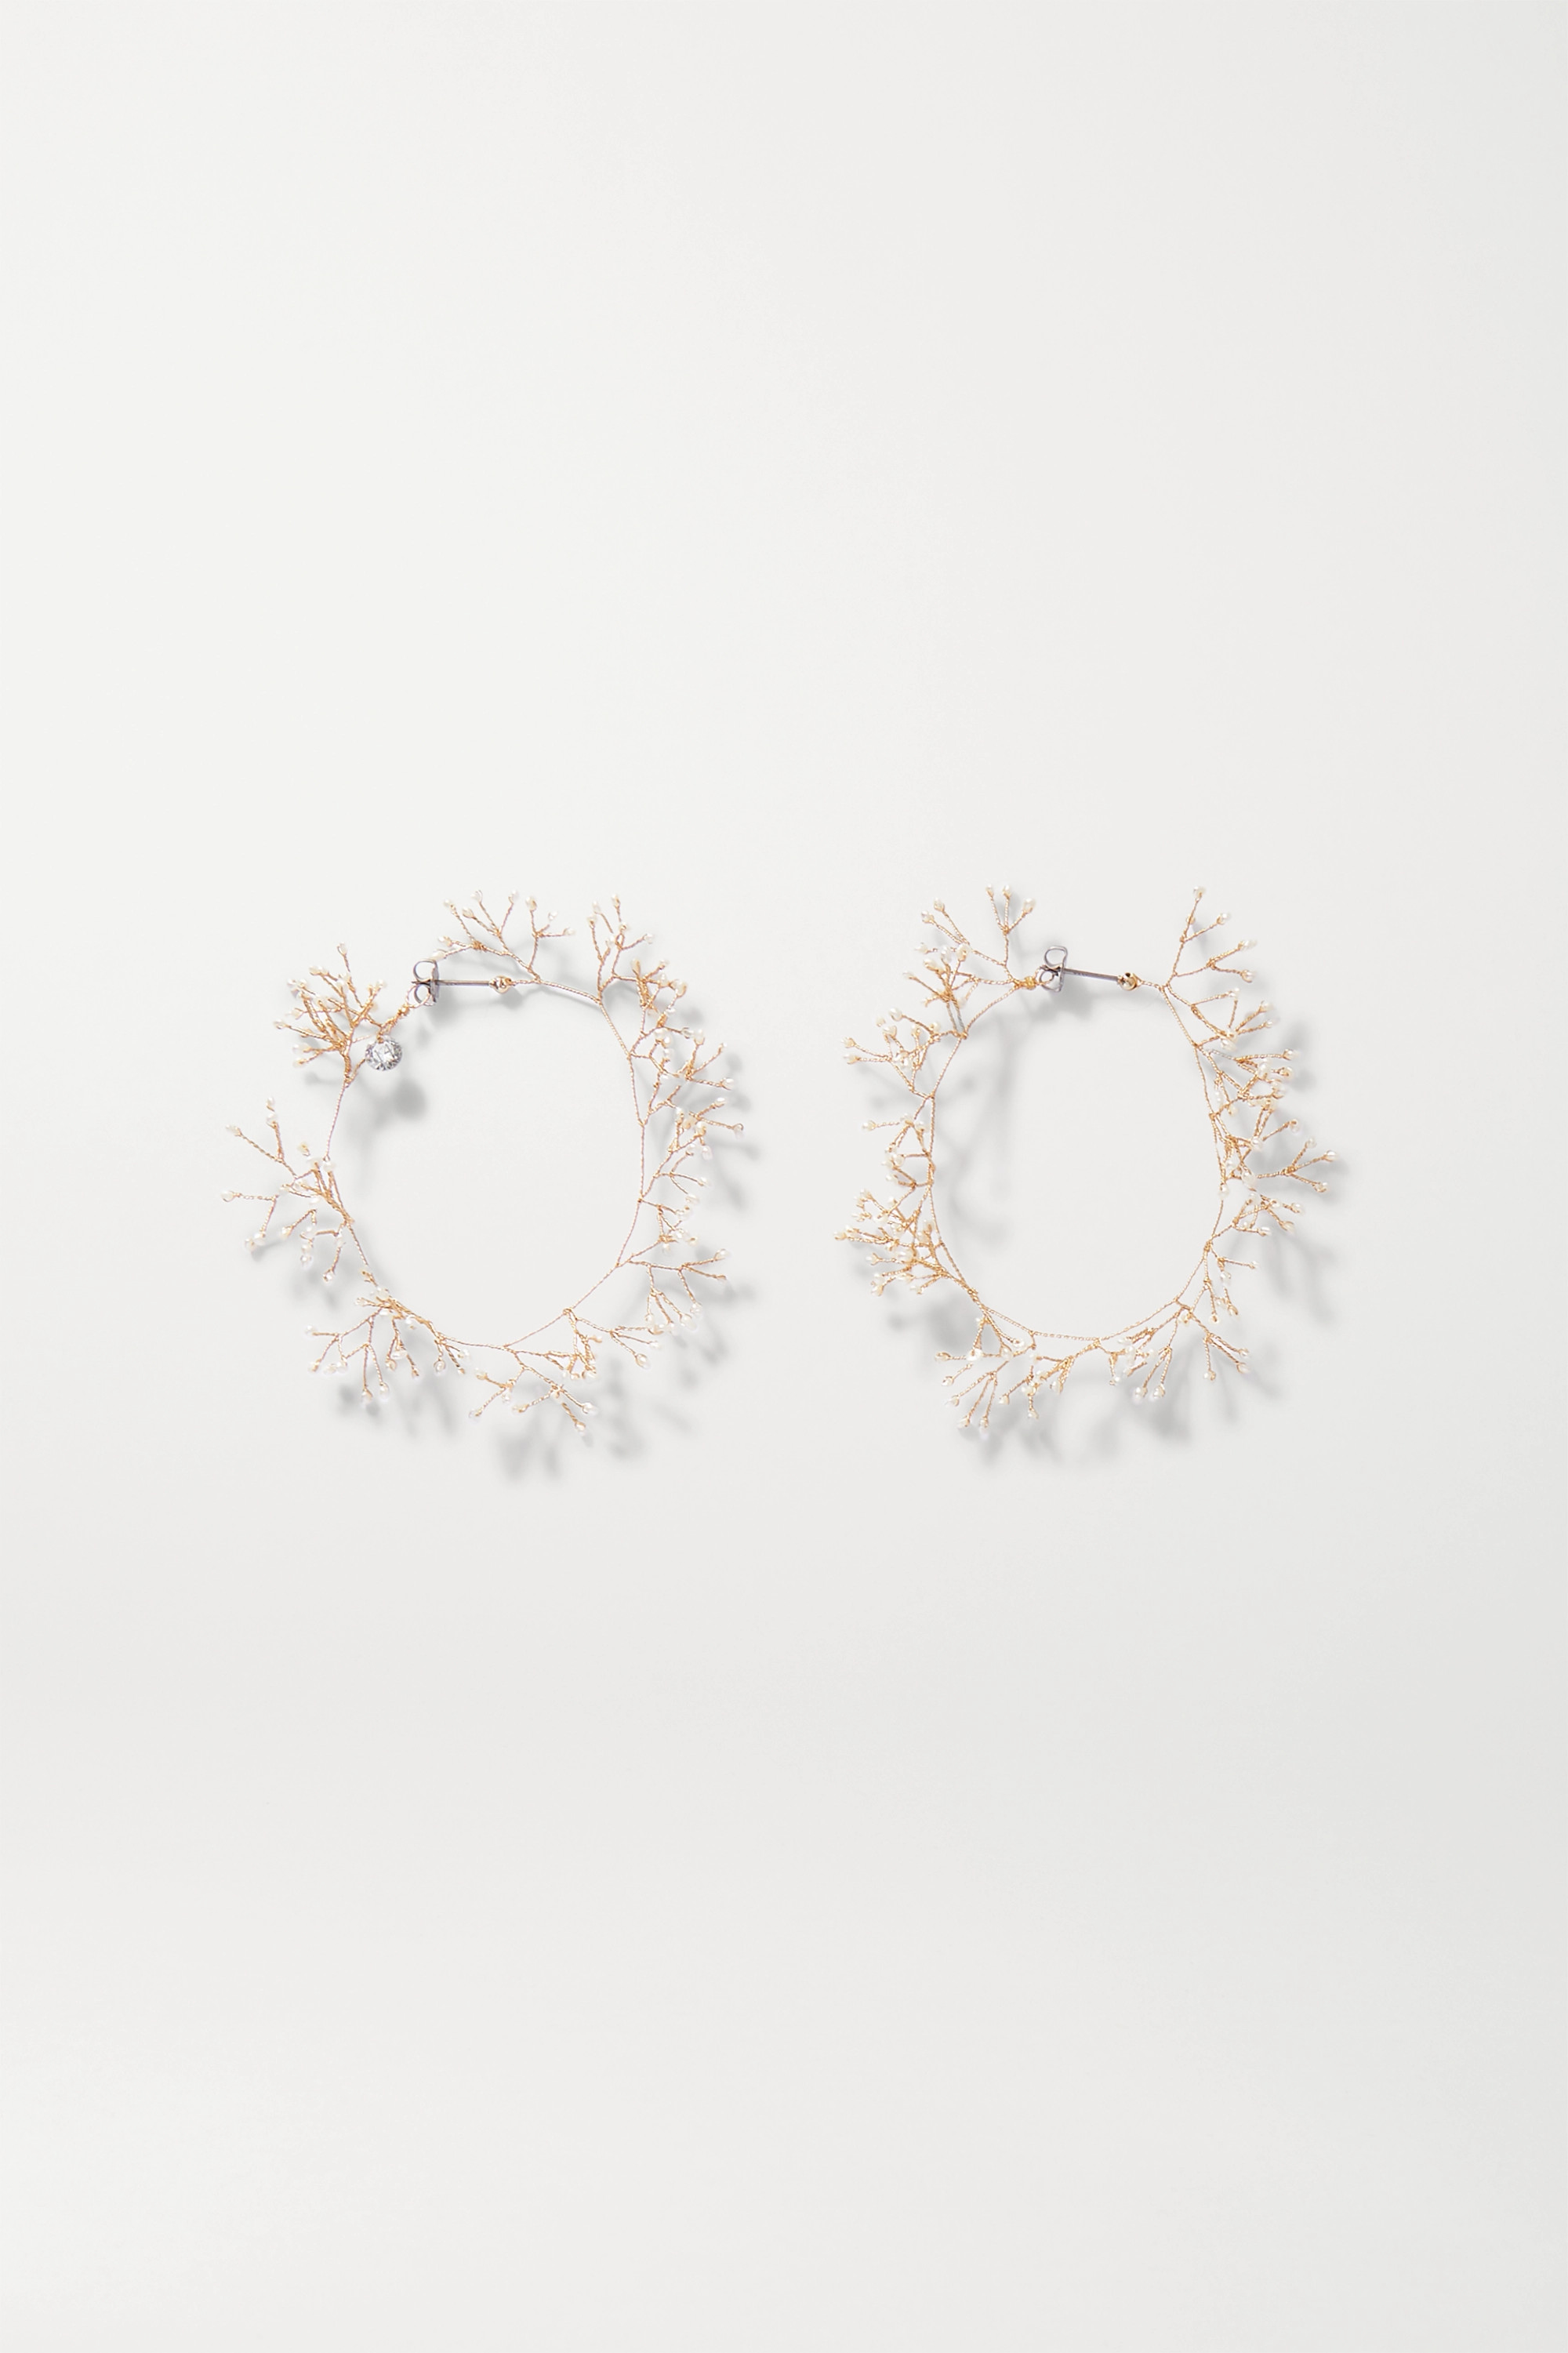 14 / Quatorze Baby's Breath gold-tone pearl hoop earrings